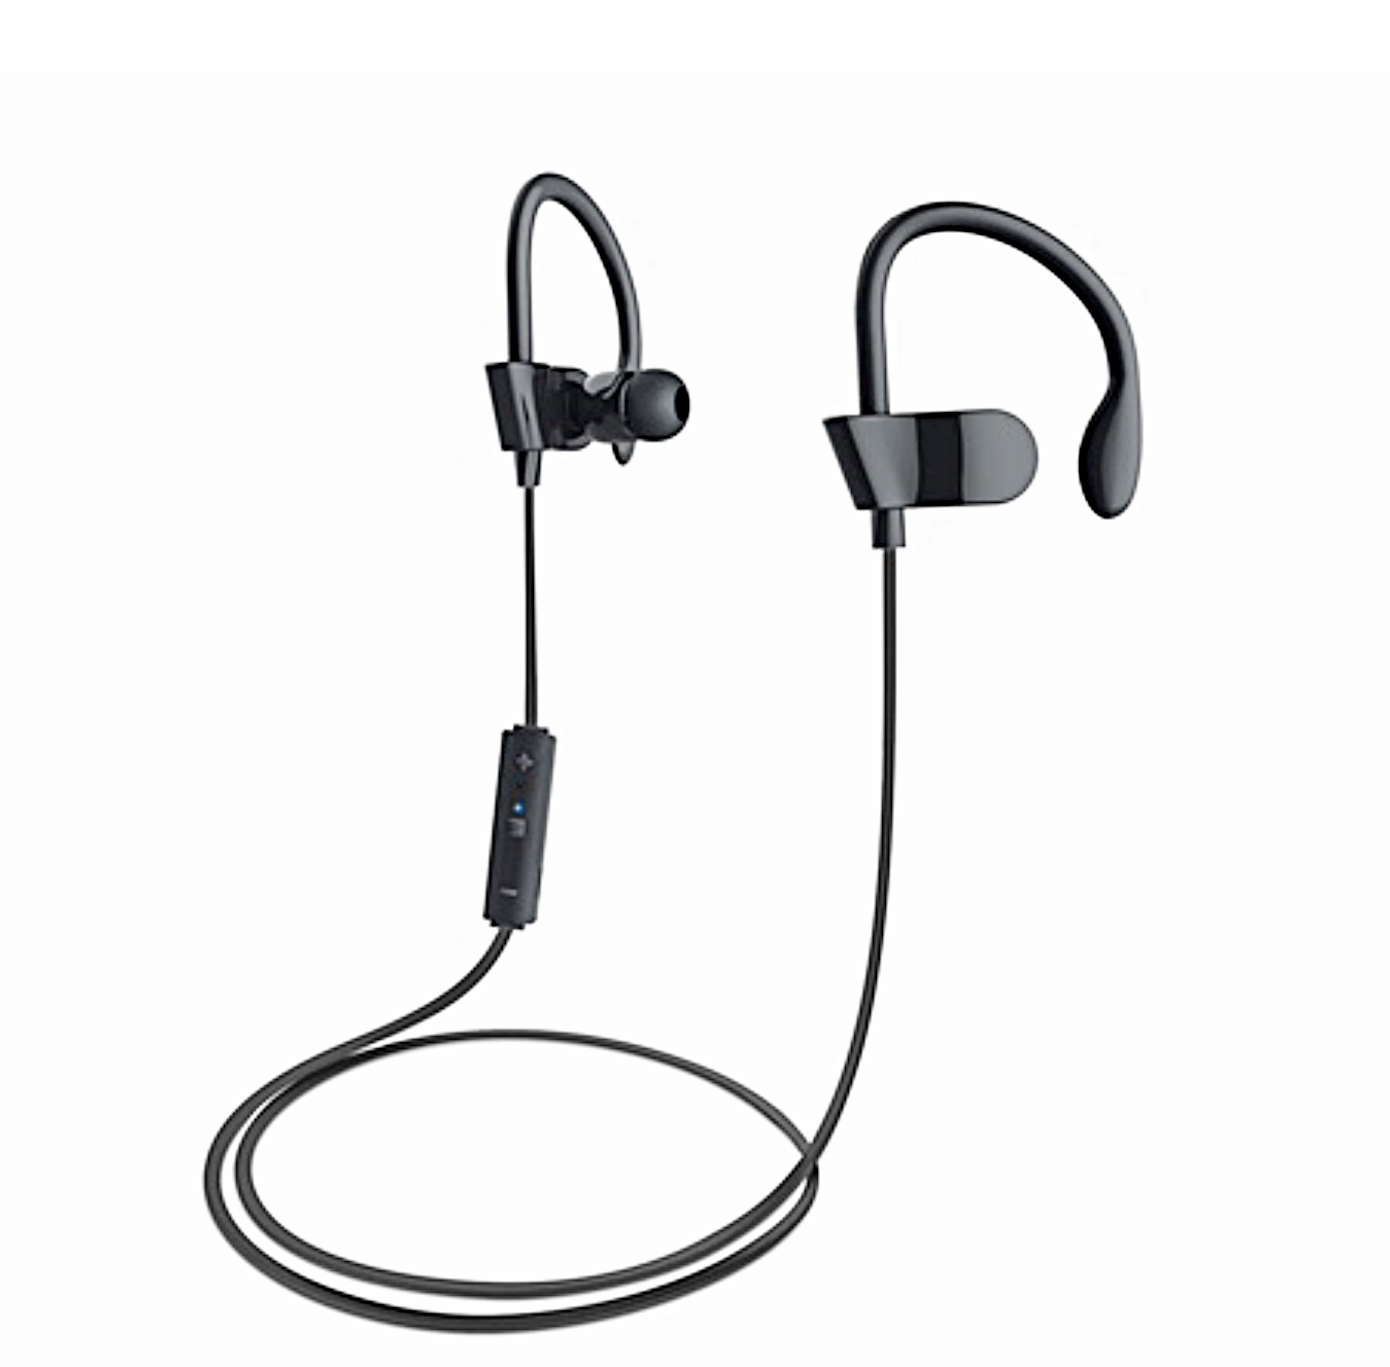 Bluetooth earbuds magnetic - apple like bluetooth earbuds